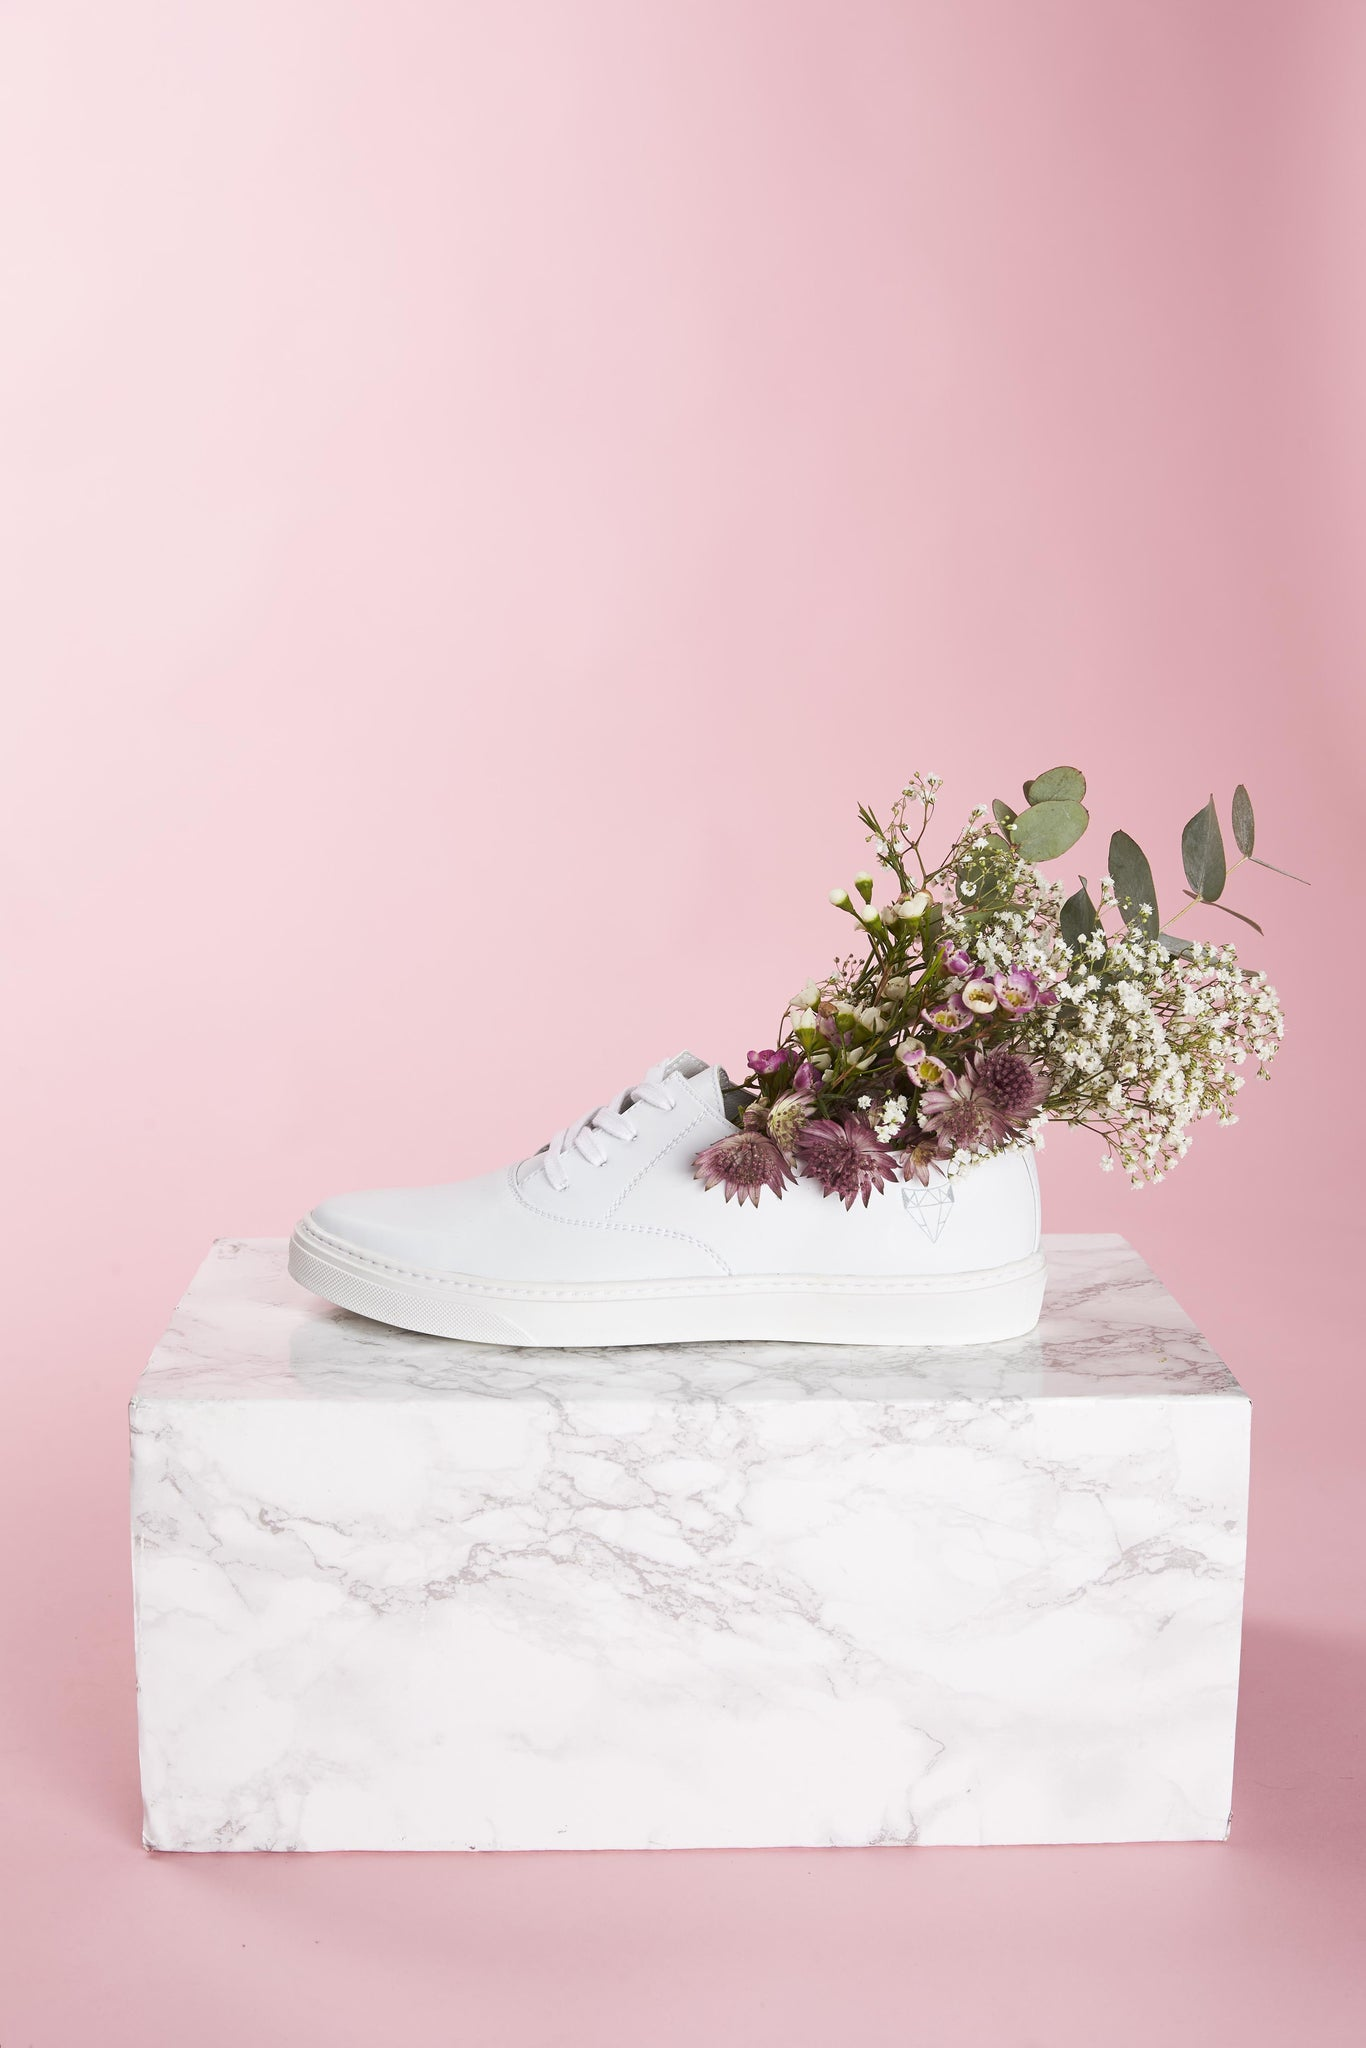 Laika vegan sneakers in white.